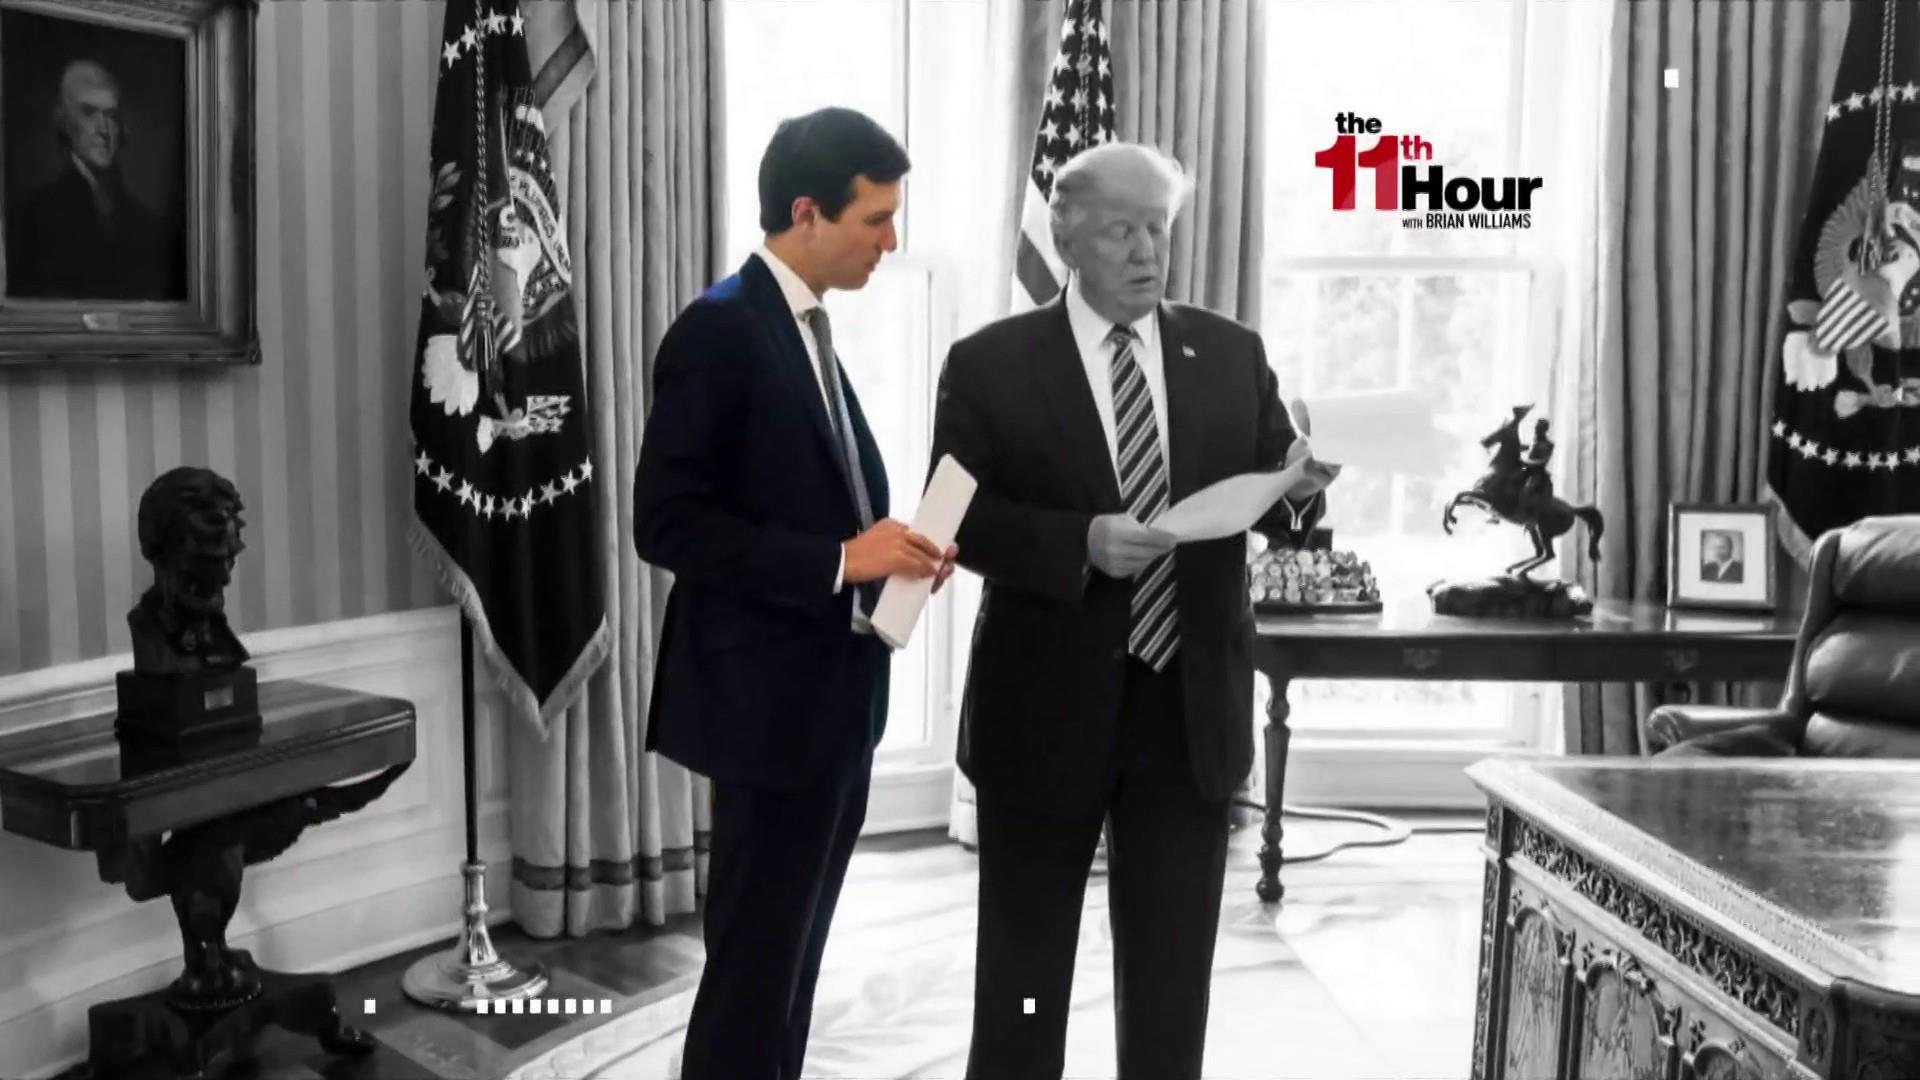 Rpt: Foreign officials have discussed how to manipulate Kushner